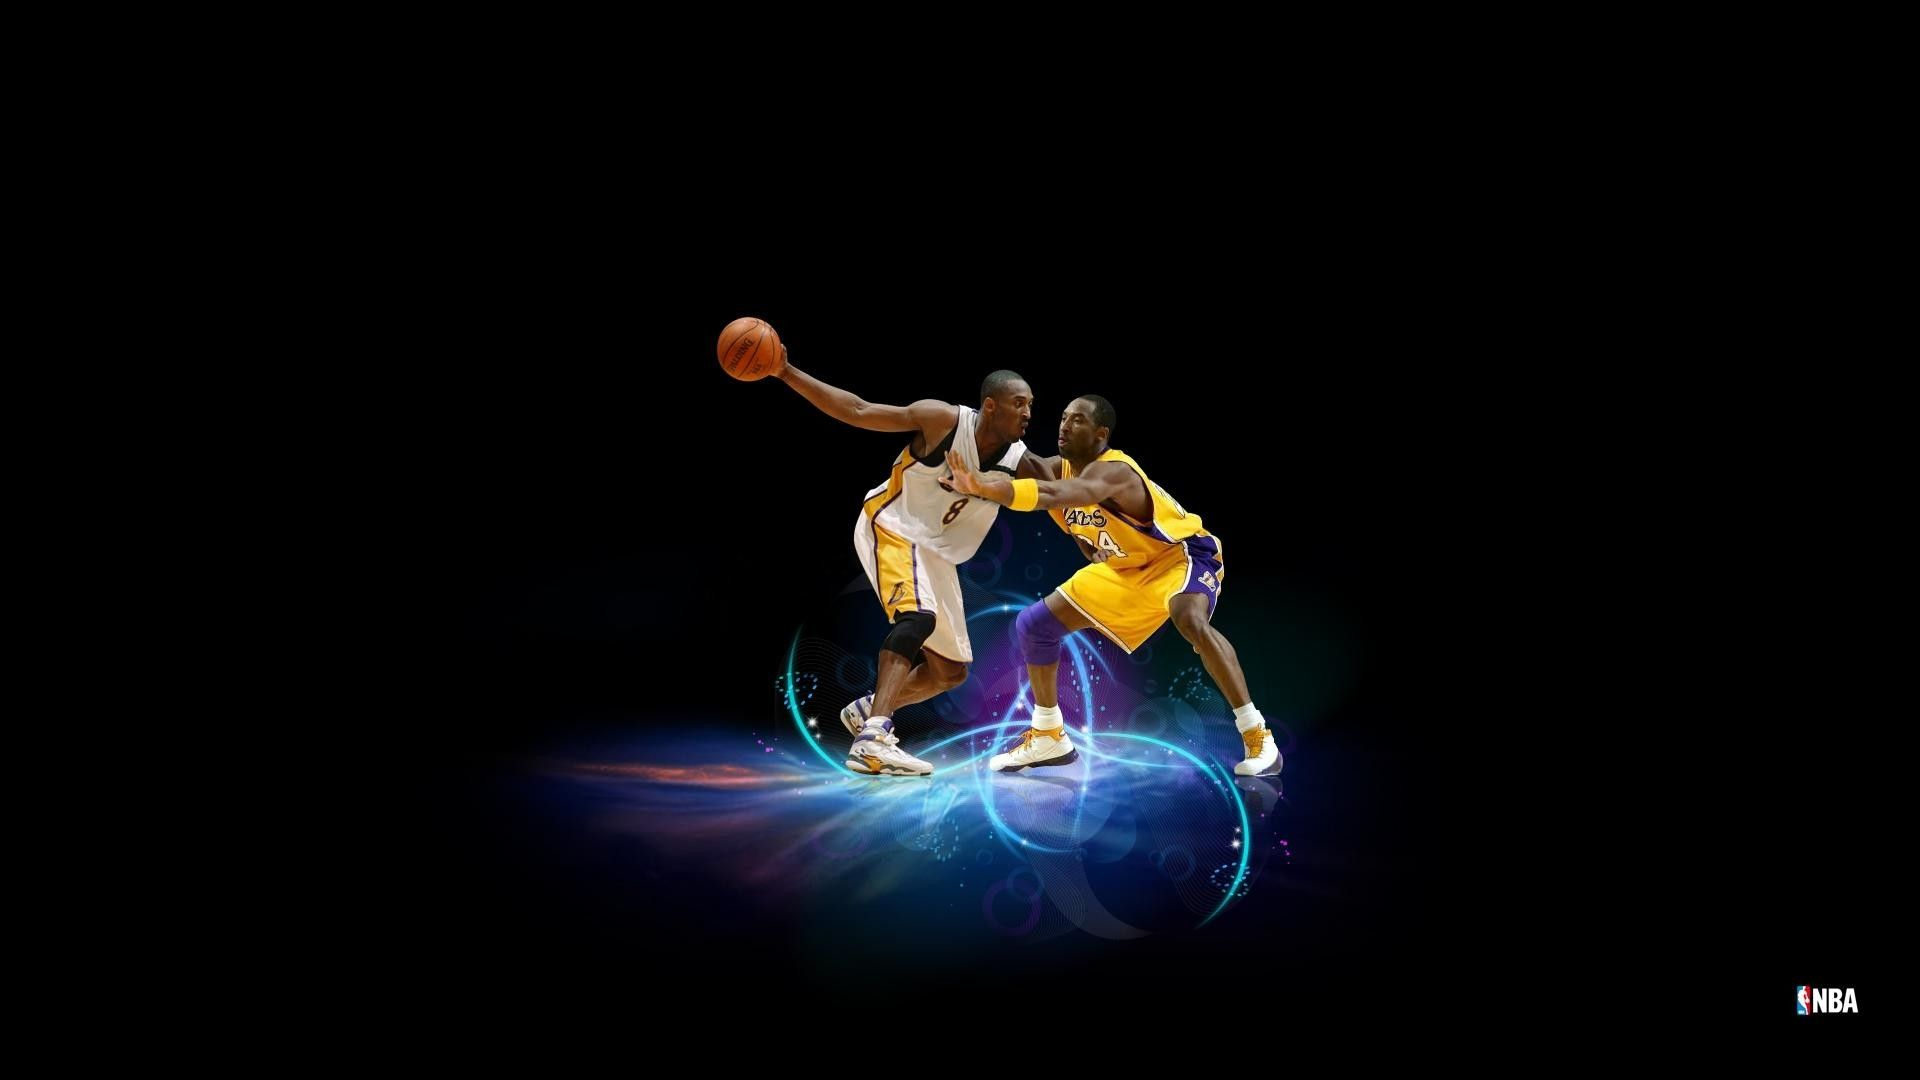 Cool Basketball Wallpapers Top Free Cool Basketball Backgrounds Wallpaperaccess